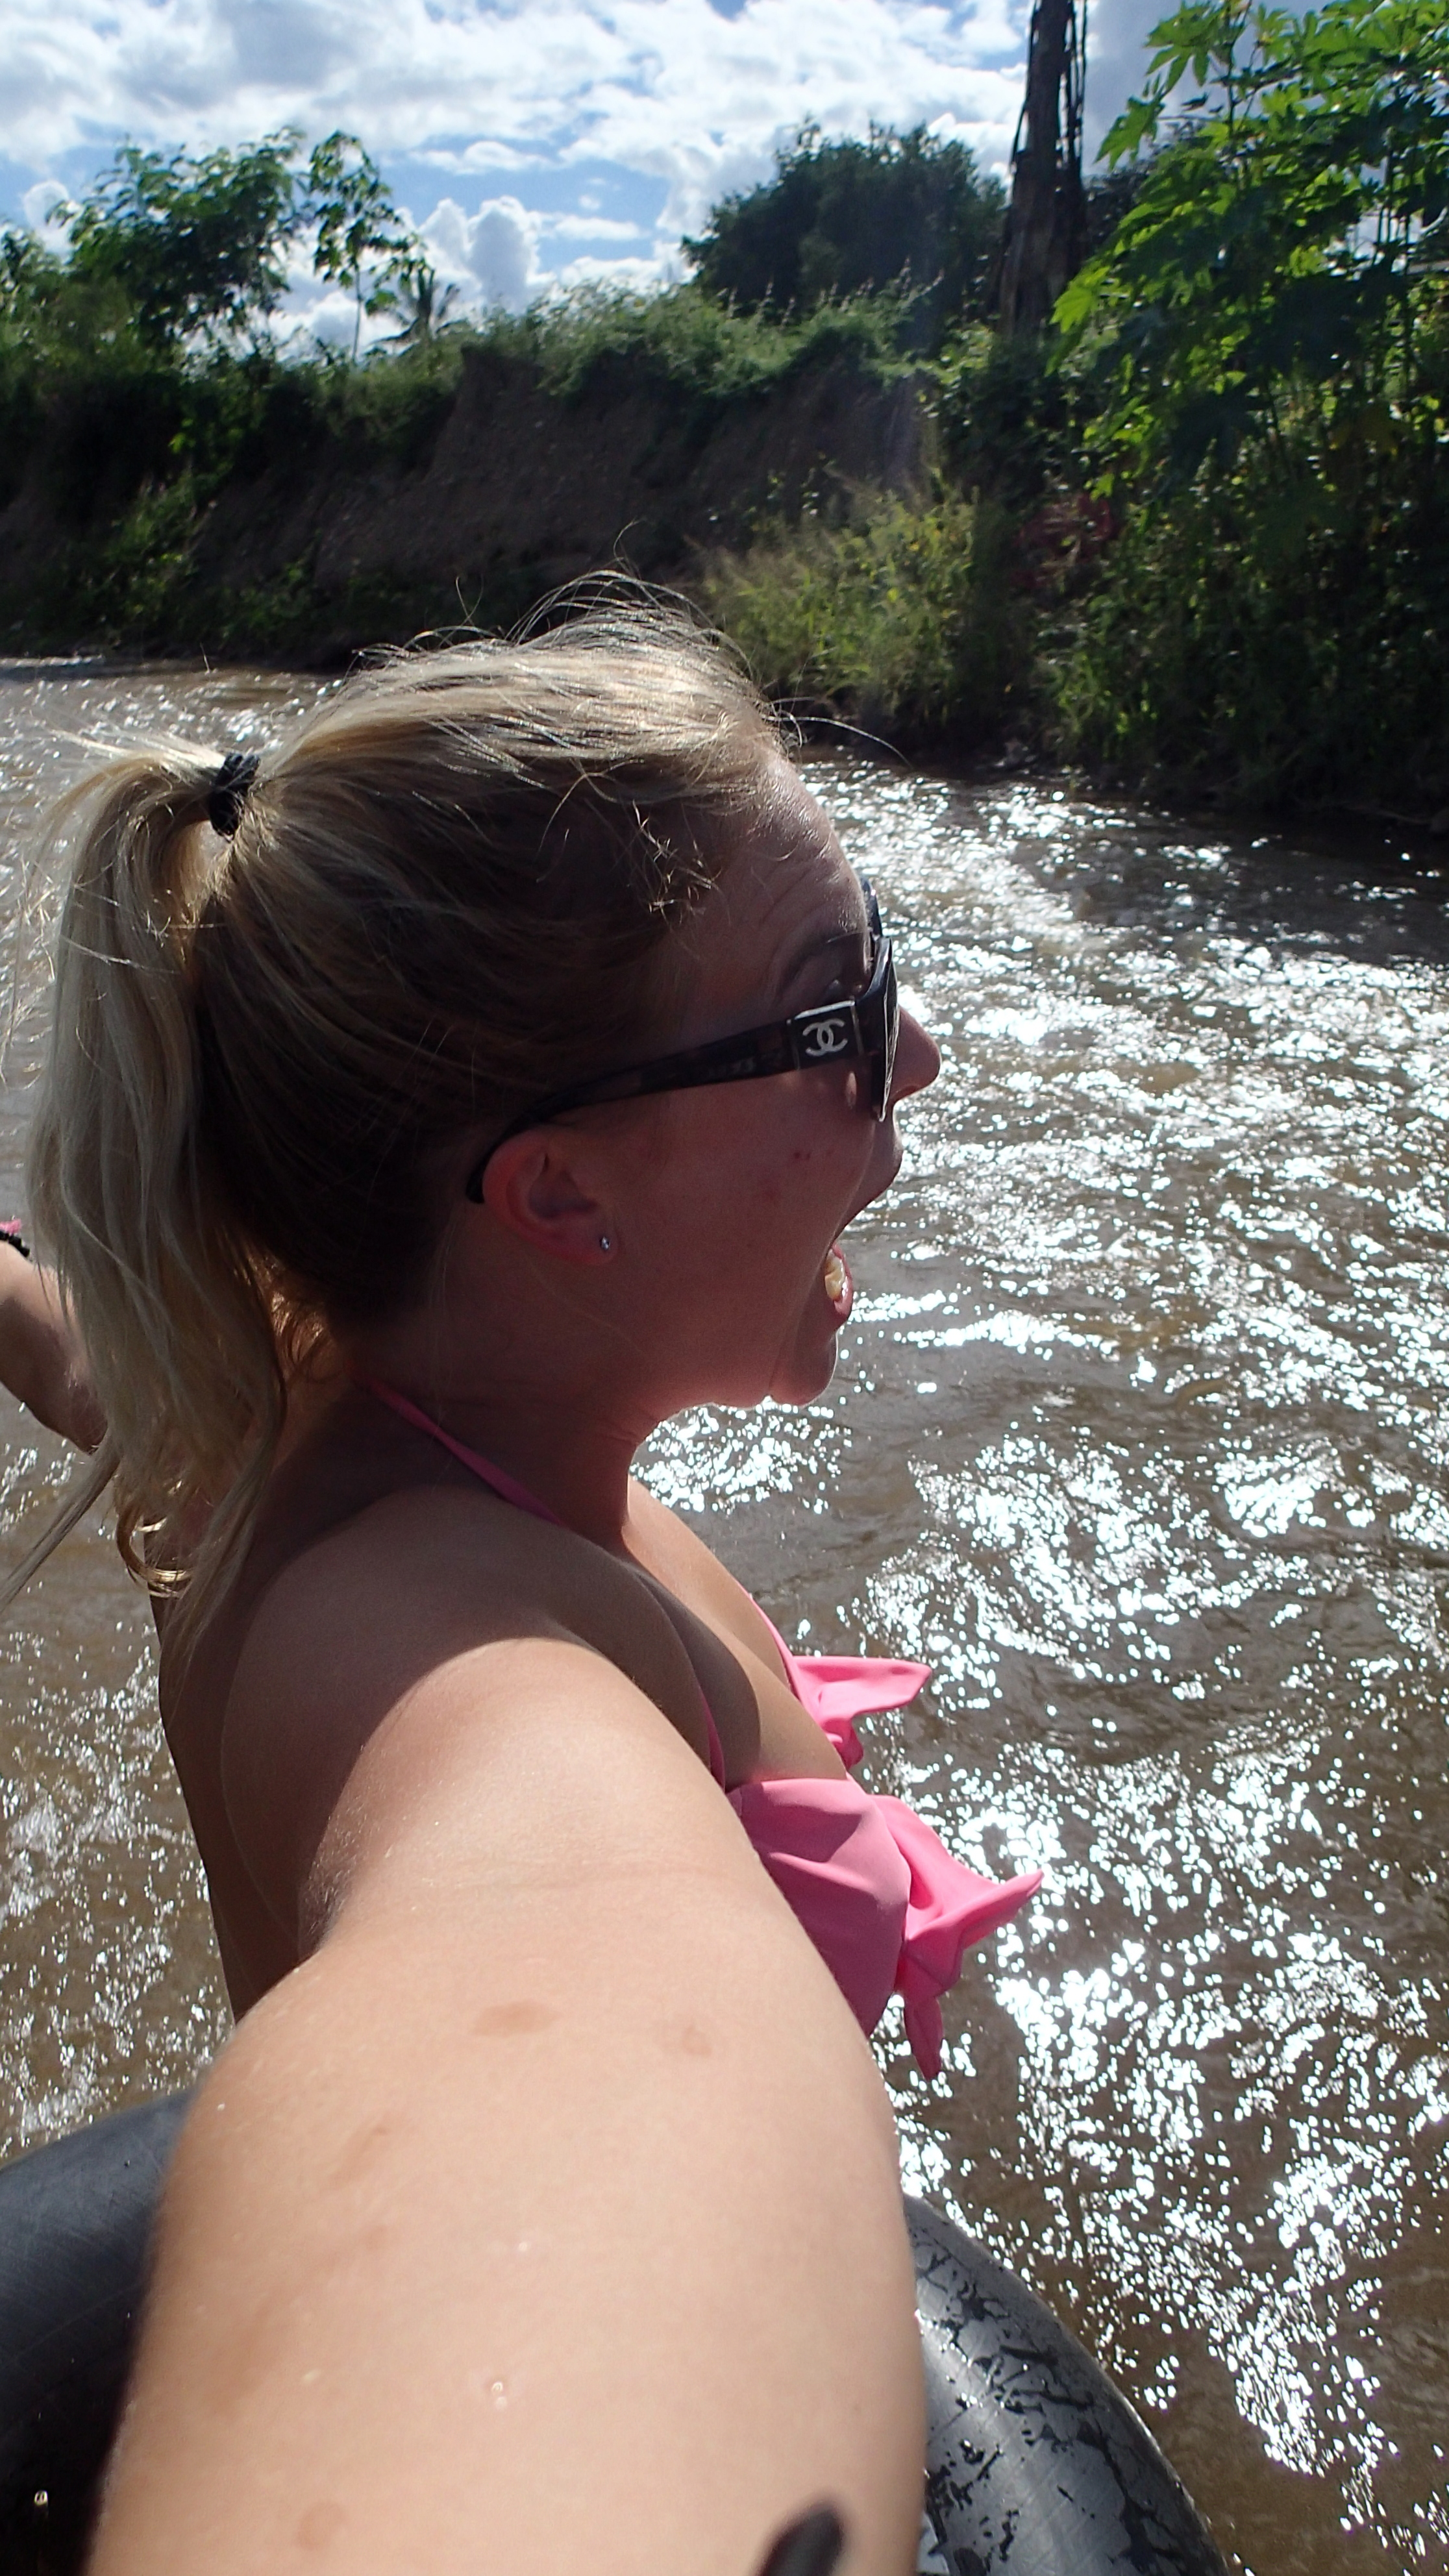 Tubing the river, not that epic.